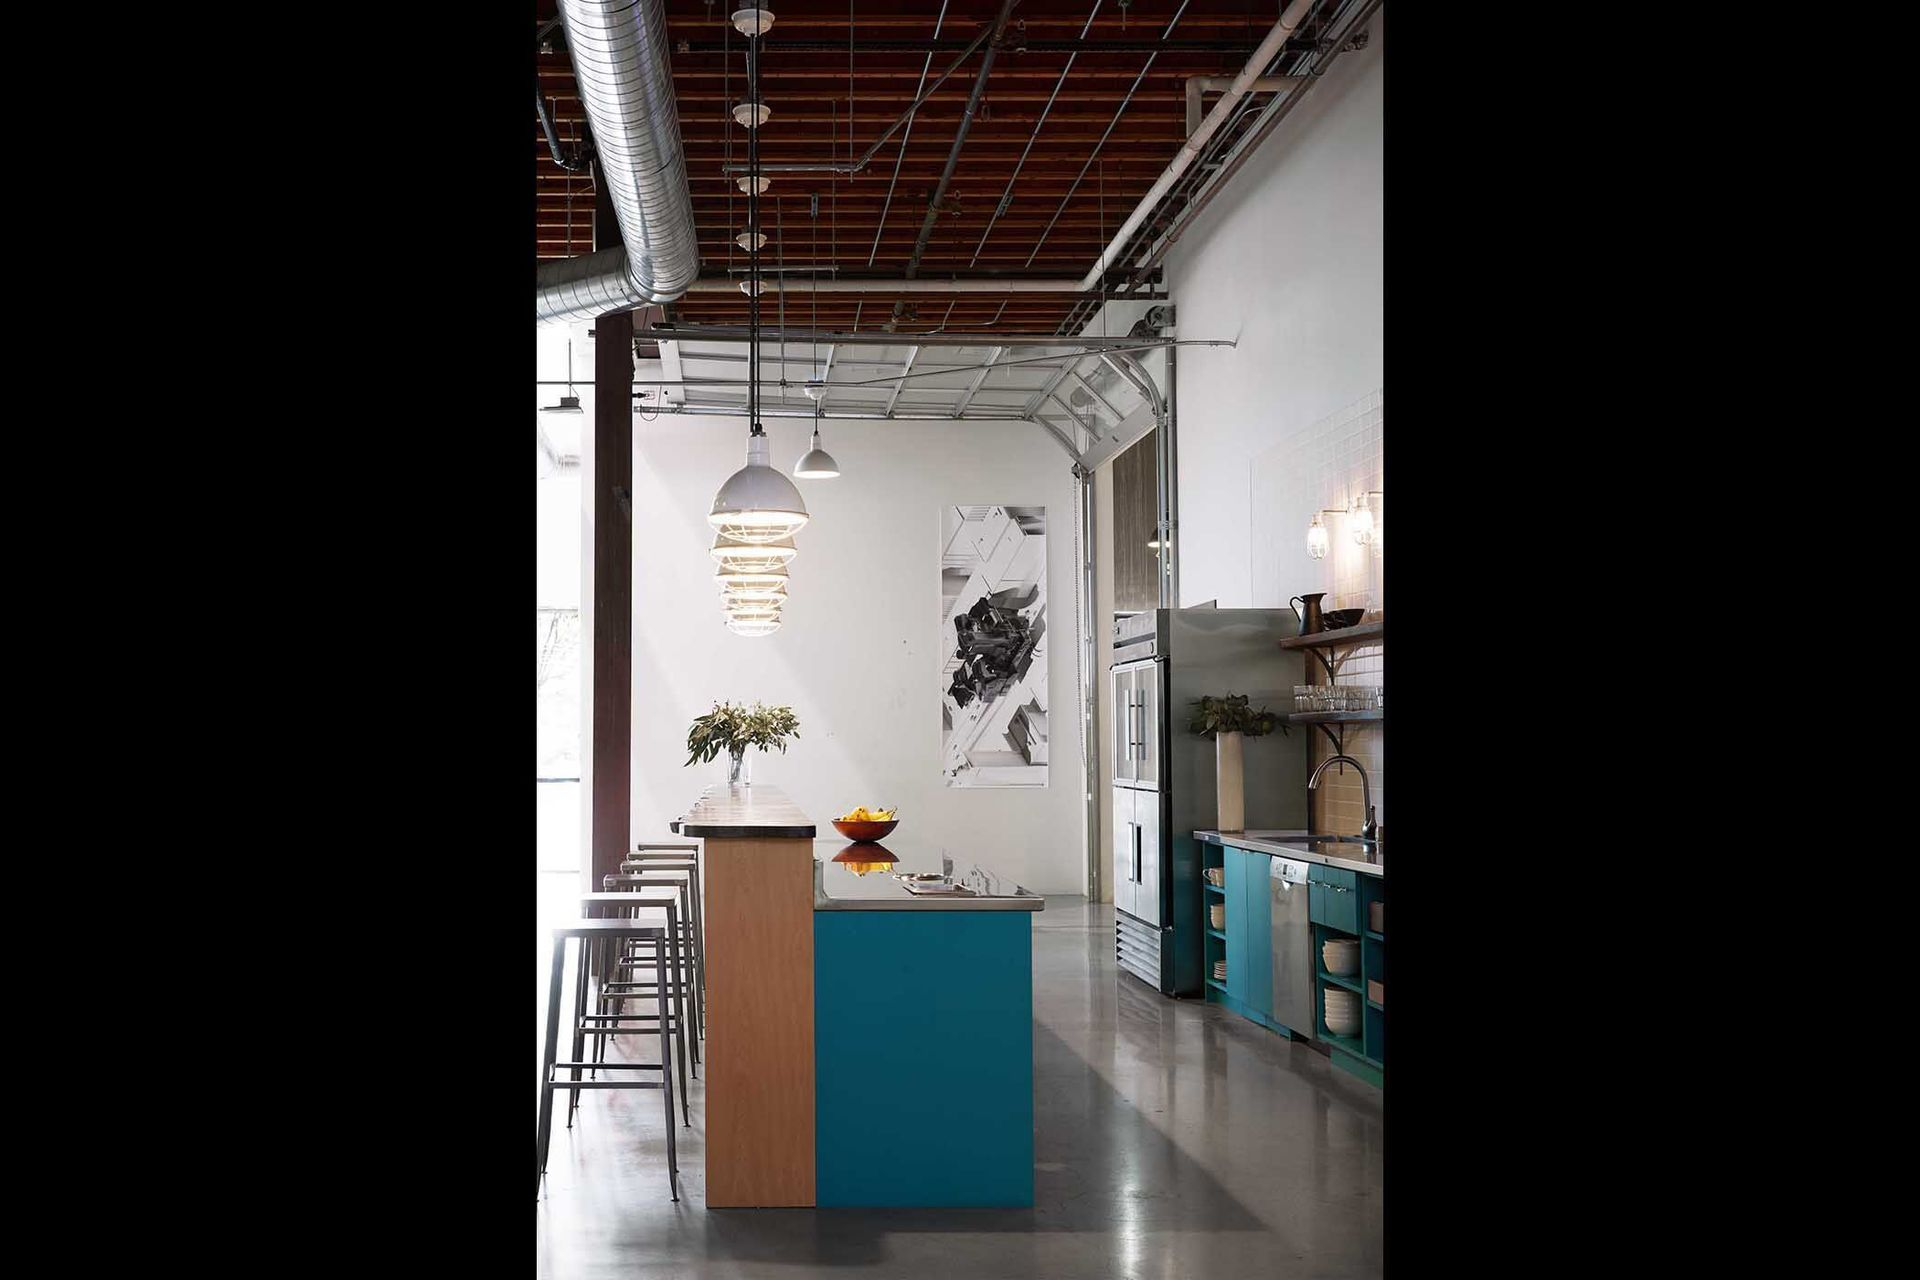 Roll-up garage doors allow various spatial configurations. Here is one of two shared kitchens within the space.